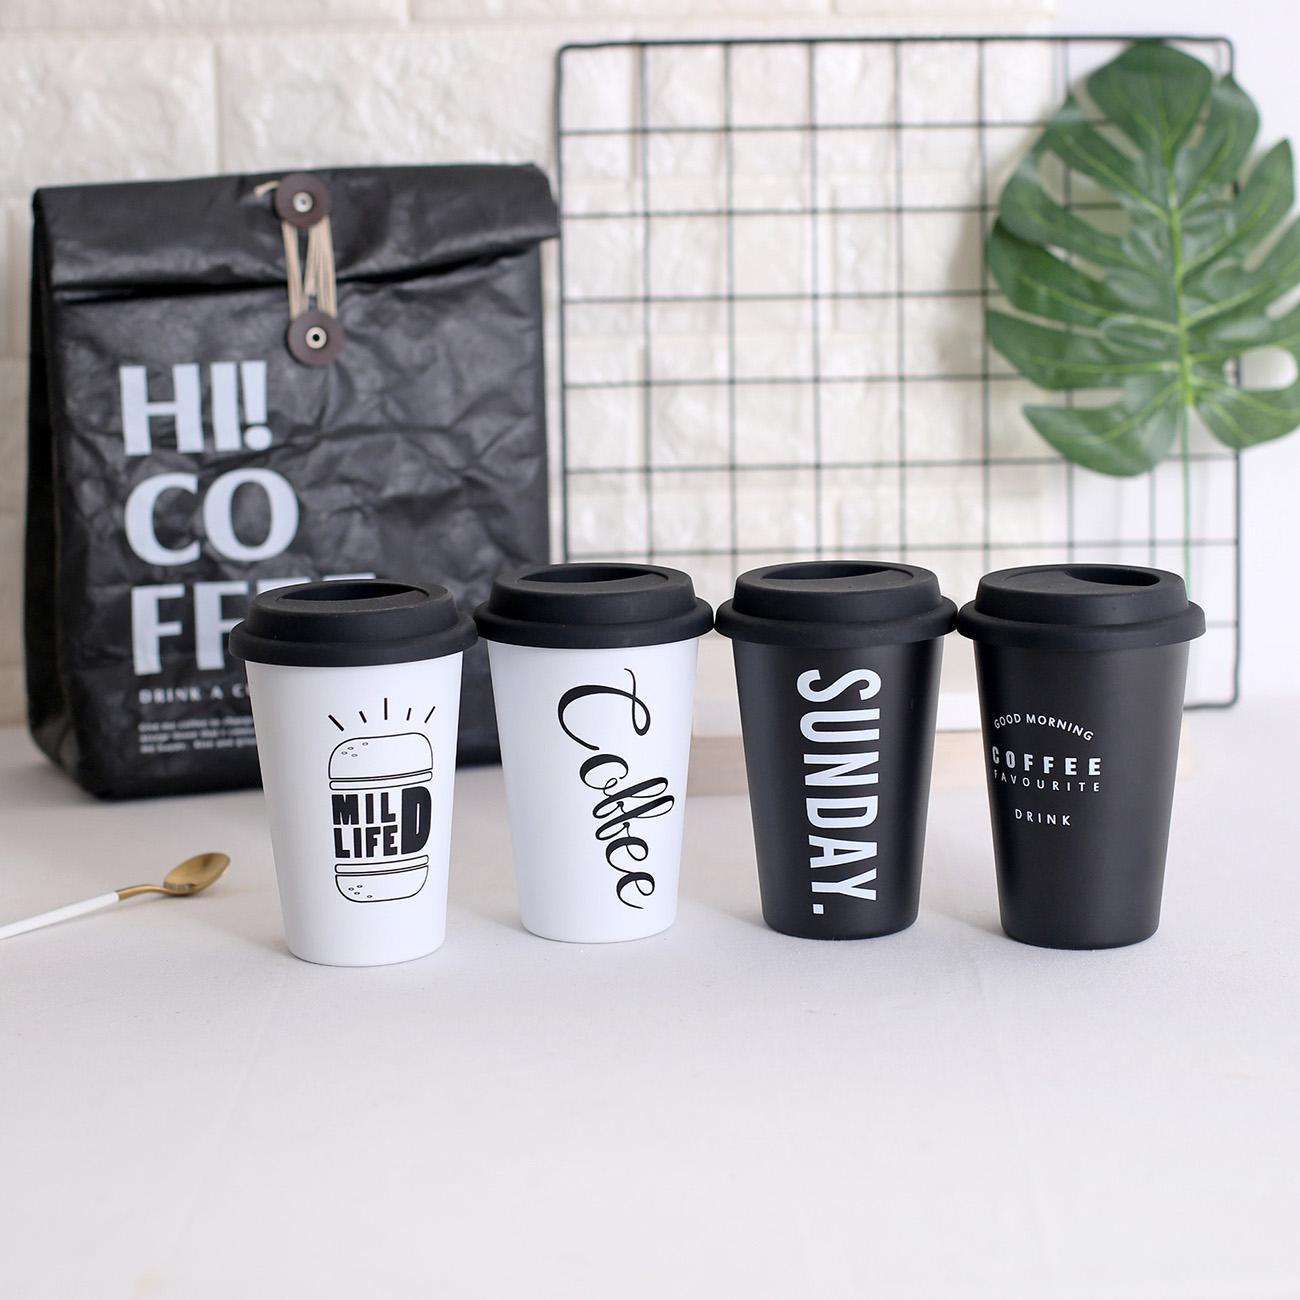 Details about Stainless Steel Original Reusable Coffee Cup Travel Mug Travel Takeaway & Lid